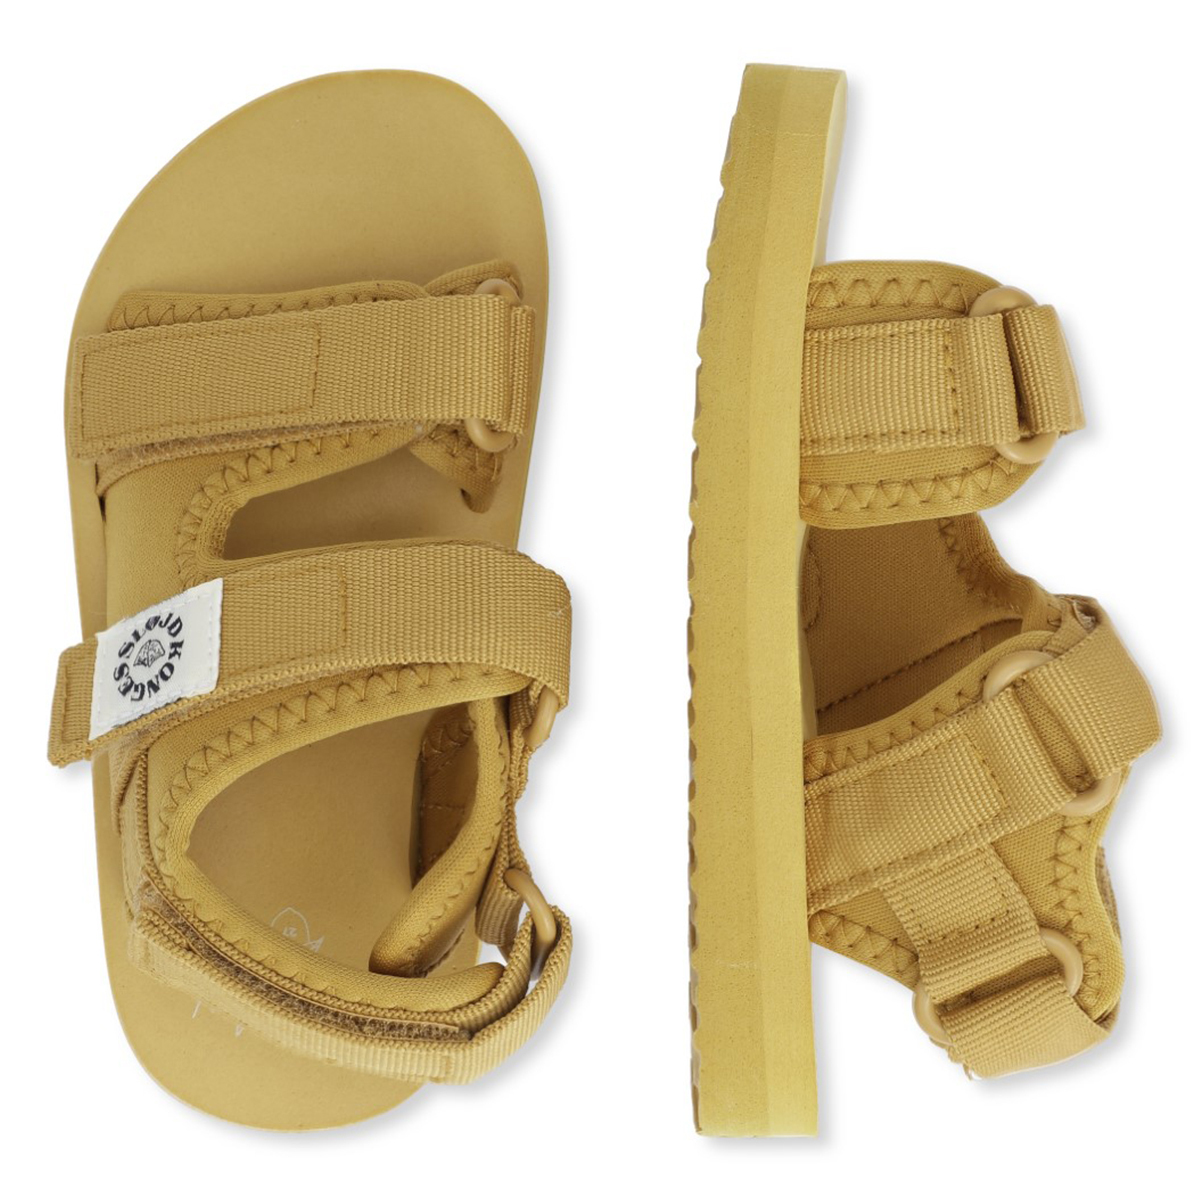 Chaussons & Chaussures Sandales Sun Mustard Gold - 24 Sandales Sun Mustard Gold - 24